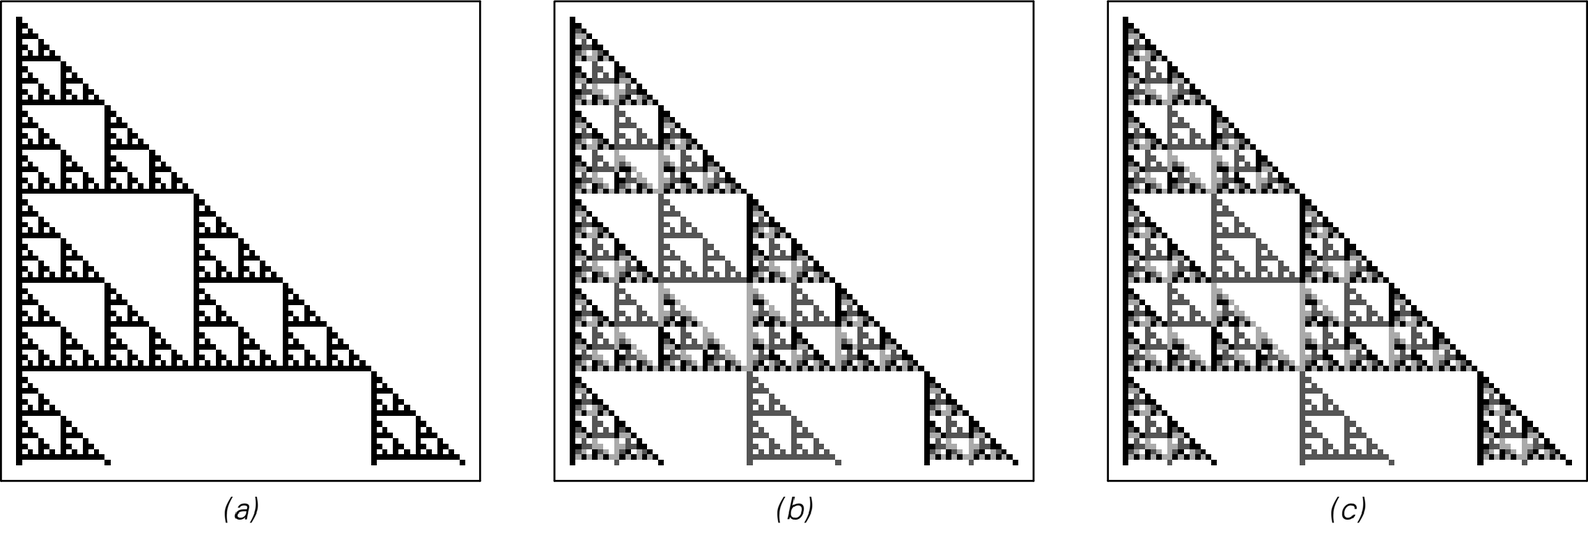 [Cellular automaton] rules based on algebraic systems image 1